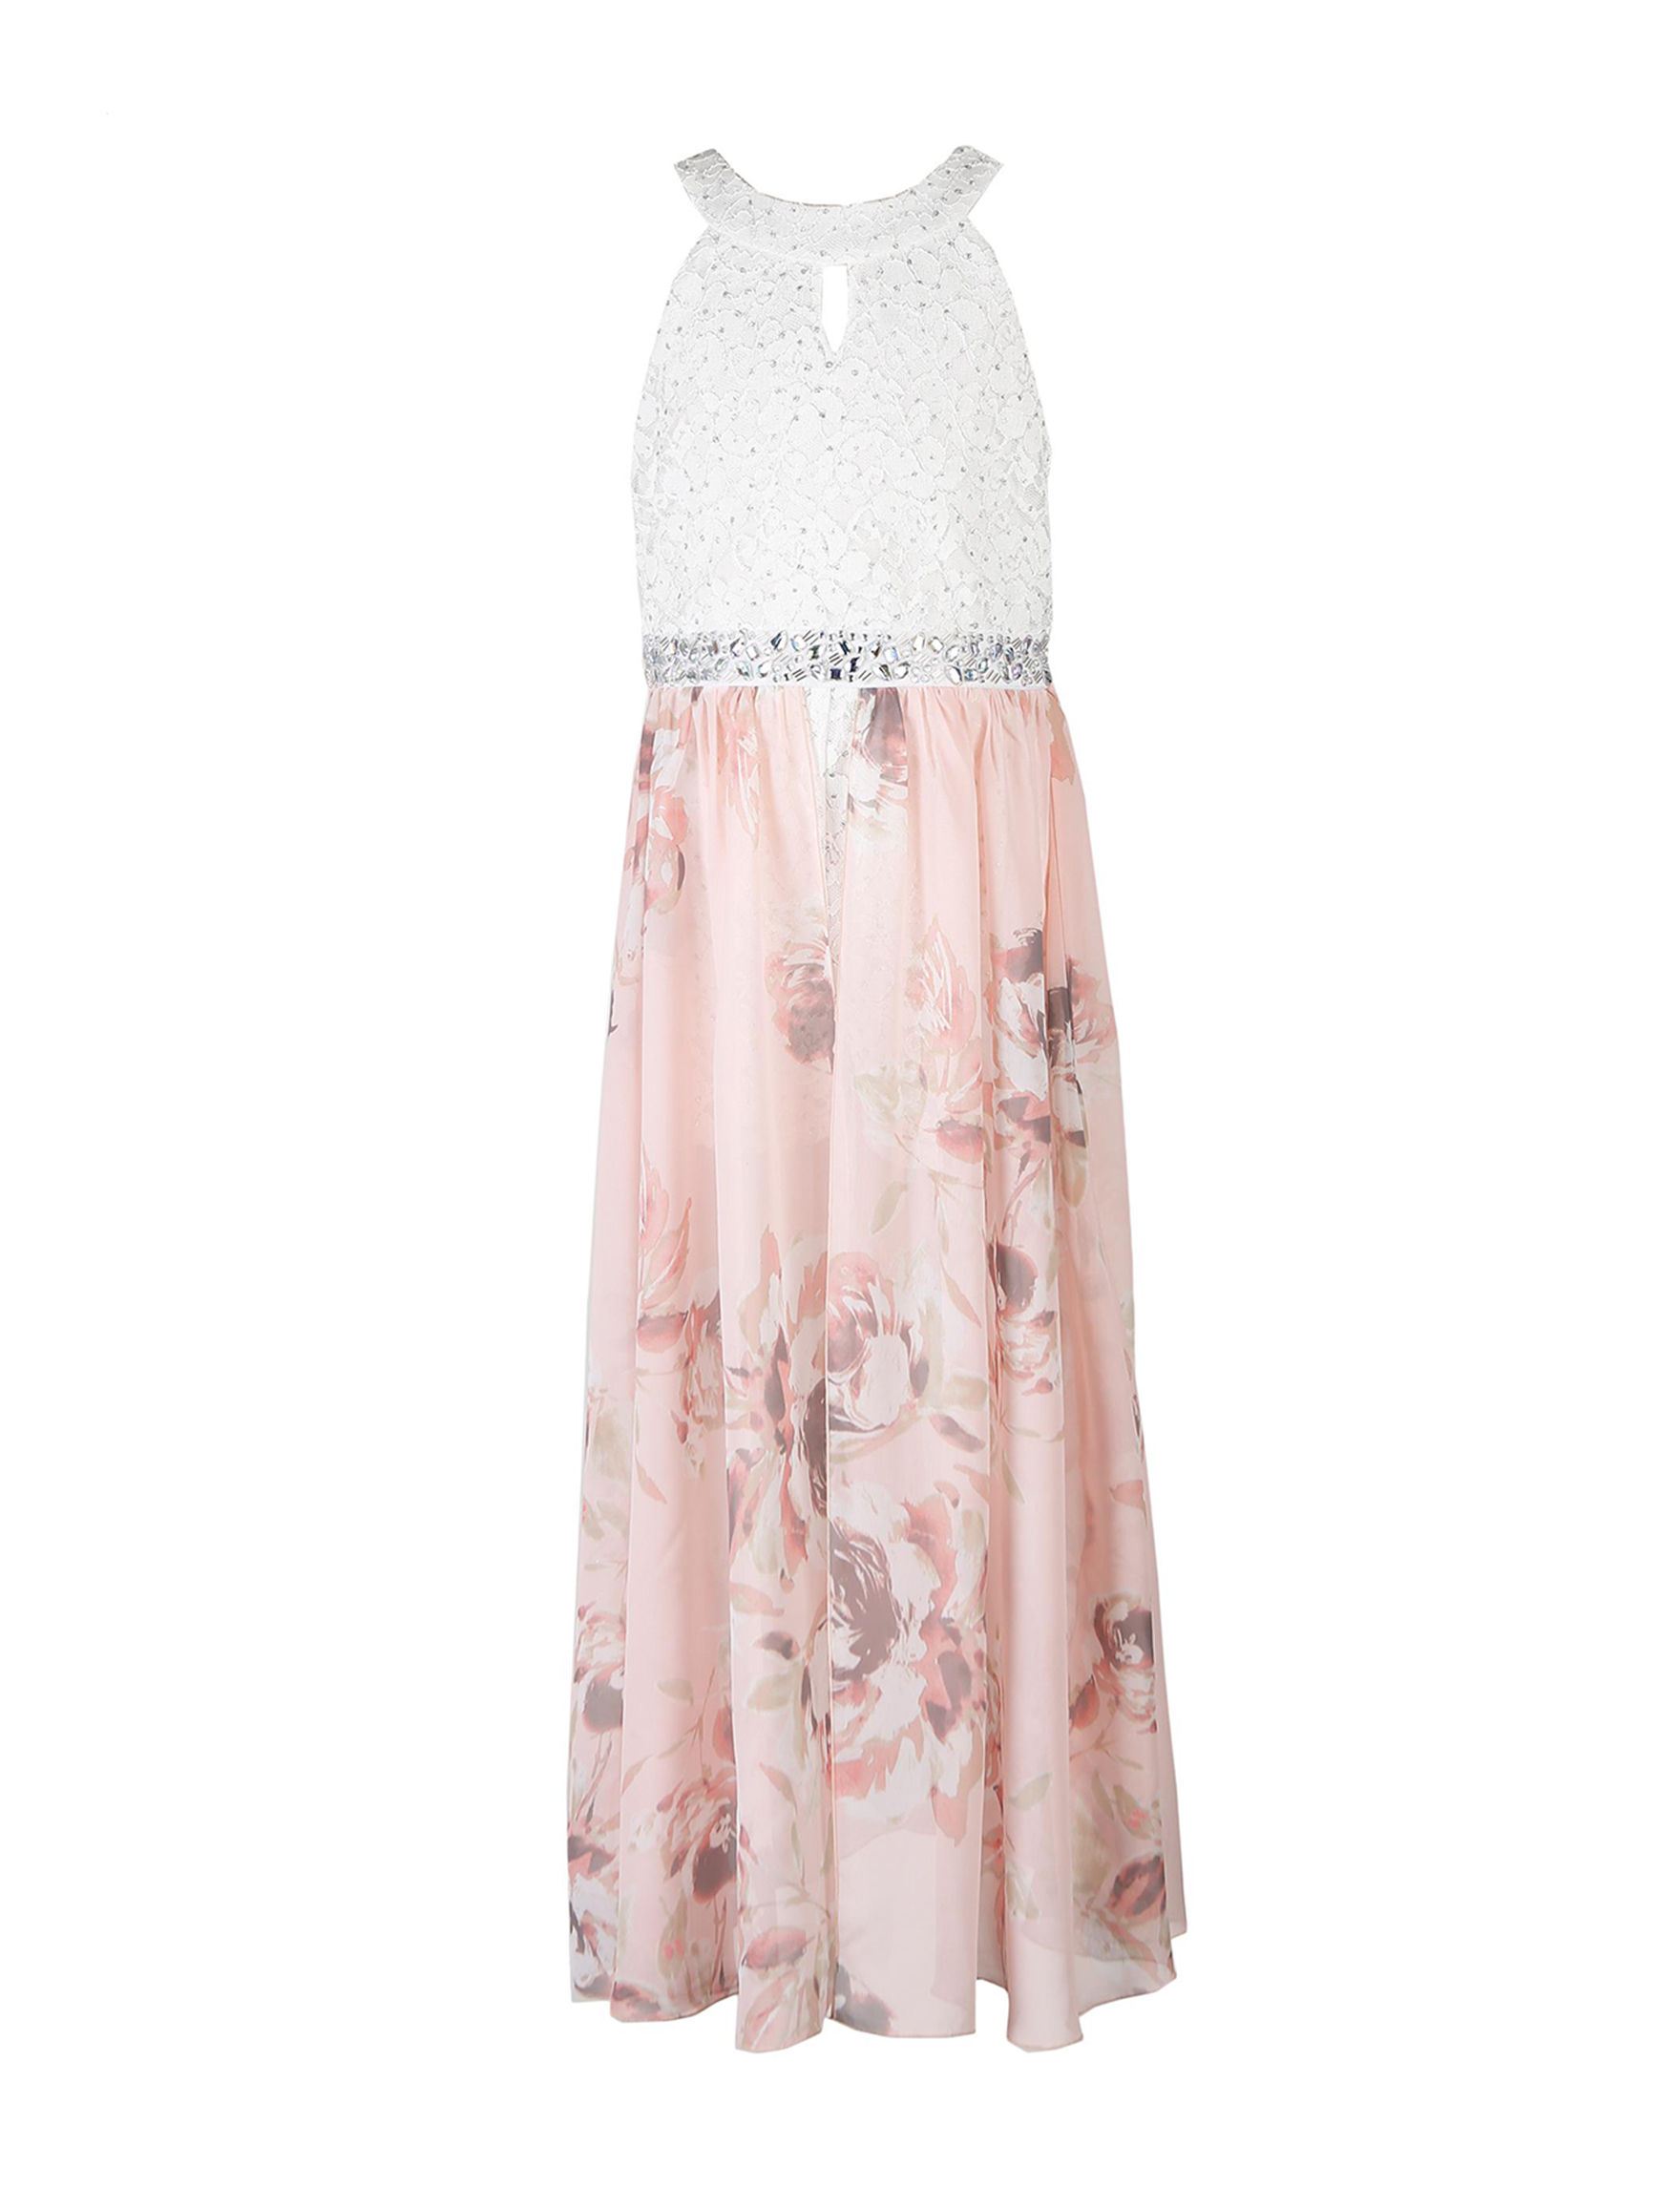 Speechless Pink Floral